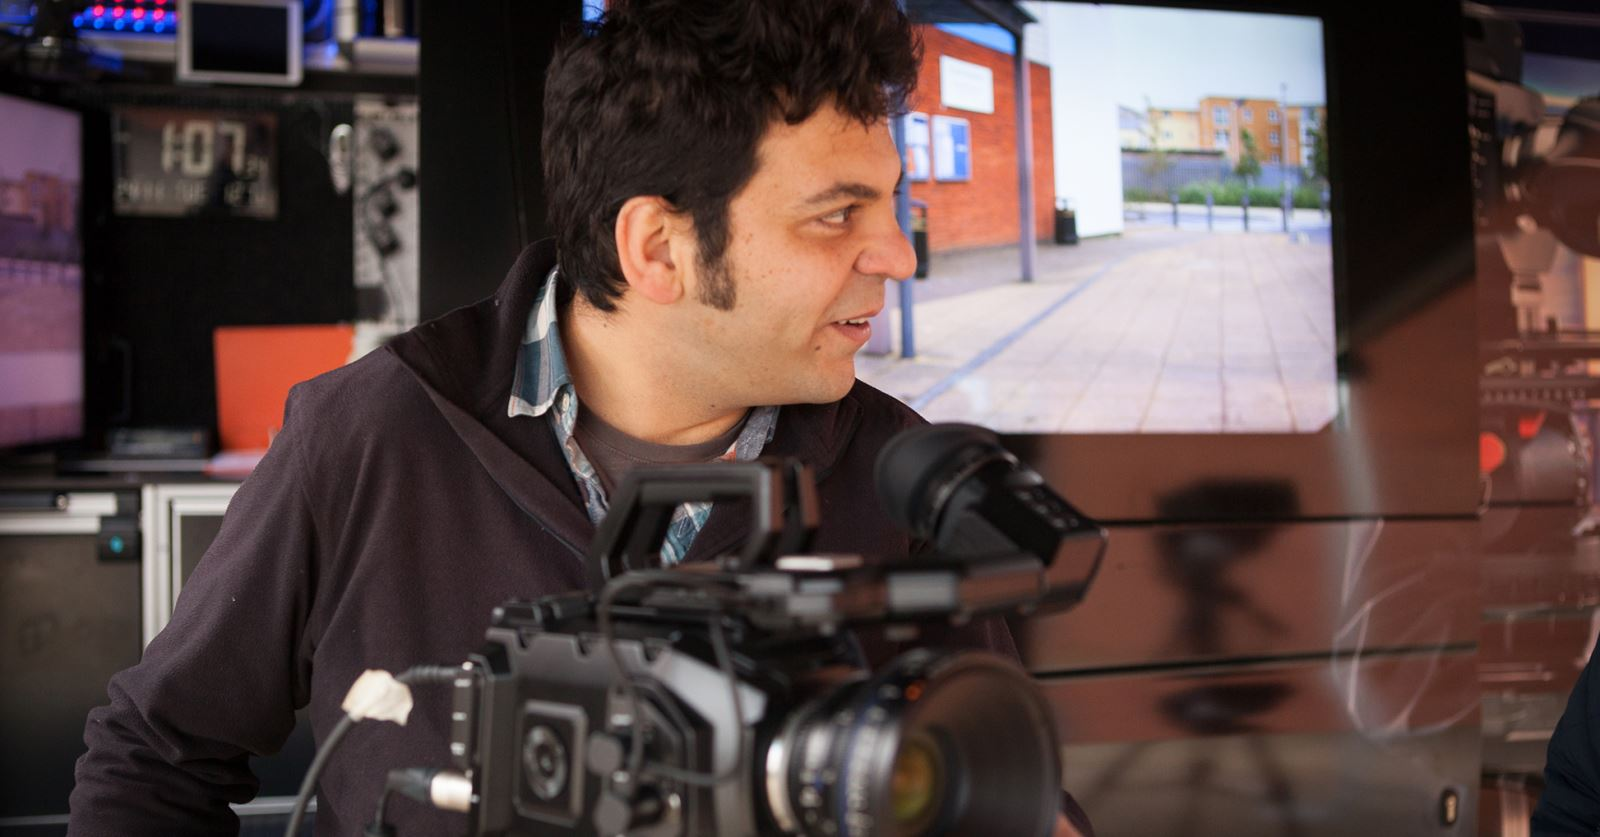 Welcome to new GTC member Atila Mustafa - trying out the latest Blackmagic cameras at their recent roadshow